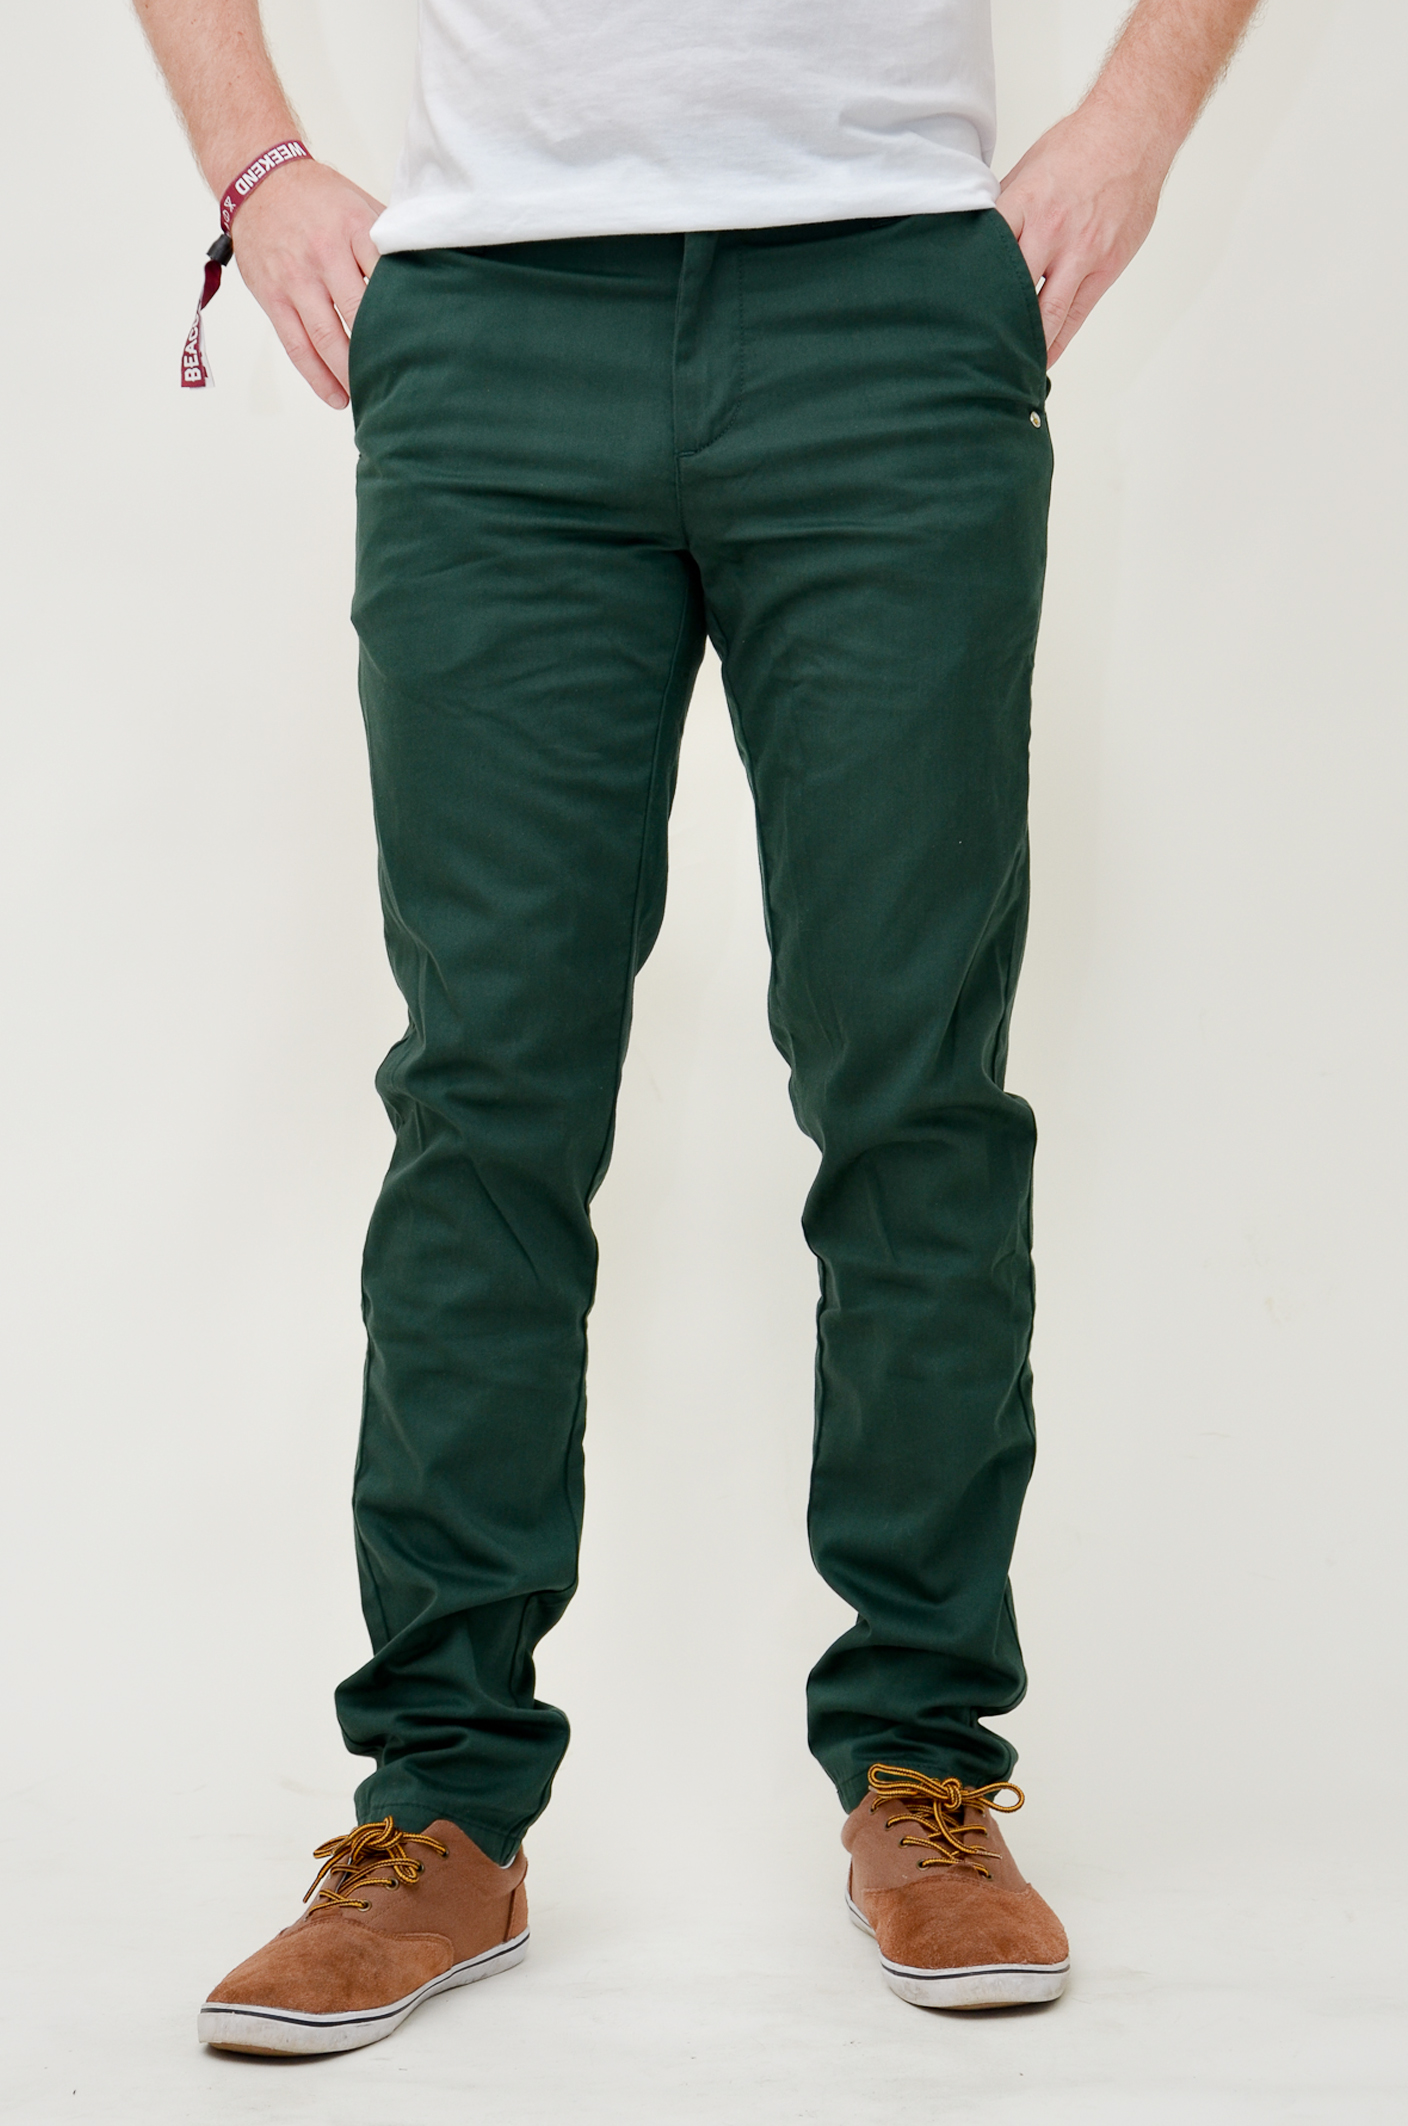 Green and Olive Pants Inspiration. Olive green is one of the colors of this Fall season. It's a great color to buy if you are looking for some new chinos. Try this seasonal color out by pairing with more earthy tones (brown, rust) or darker colors (navy) to help tame it .